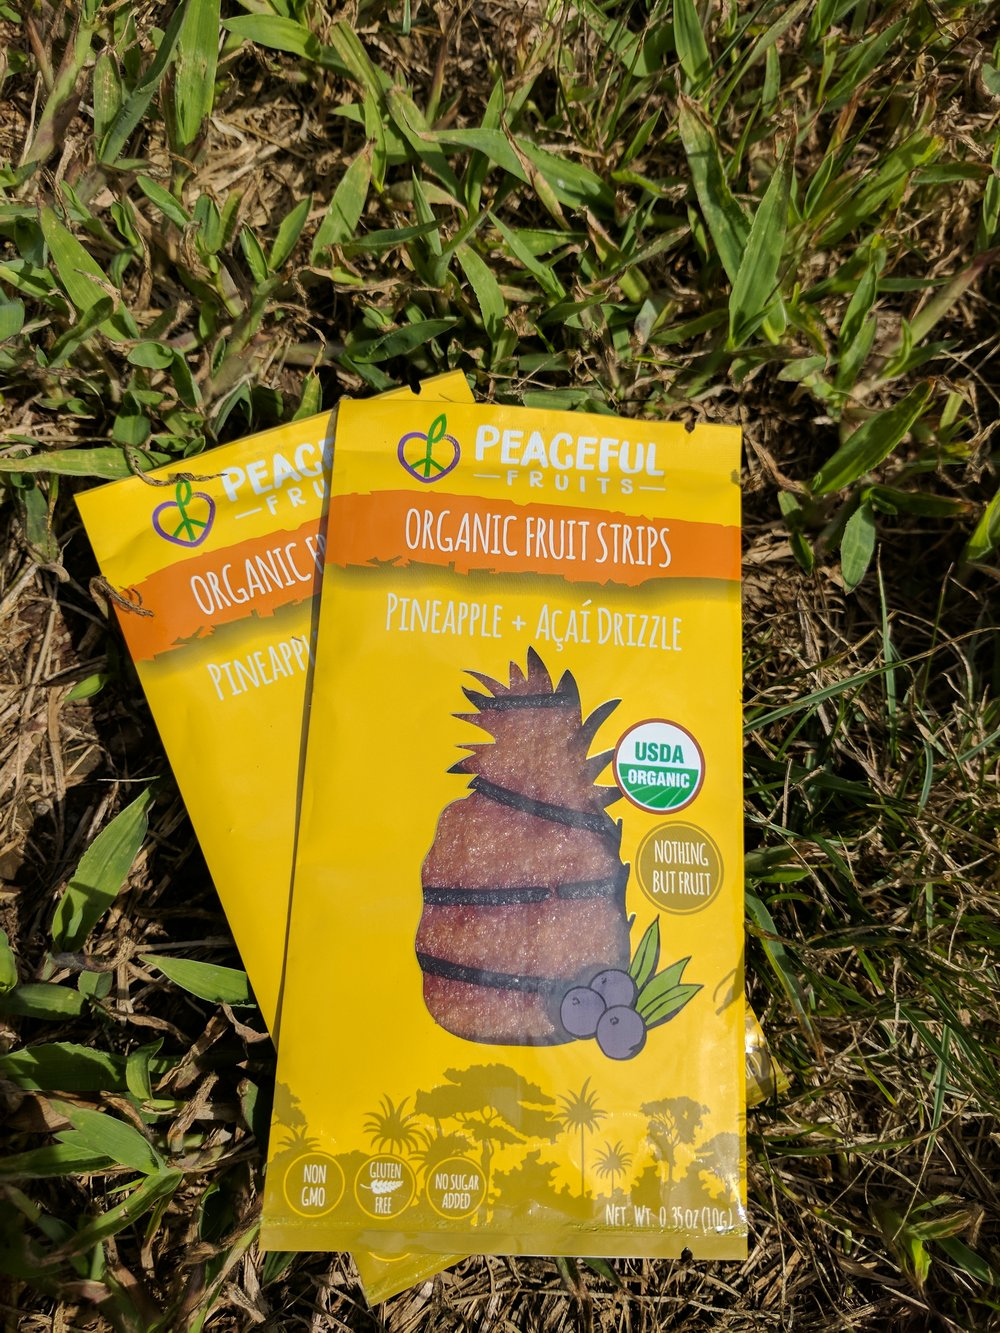 Close your eyes and feel the tropical beach waves wash over your taste buds as you bite into this mother-nature loving snack. Chewy and sweet, this is the unique flavor combo your snack time has been missing.